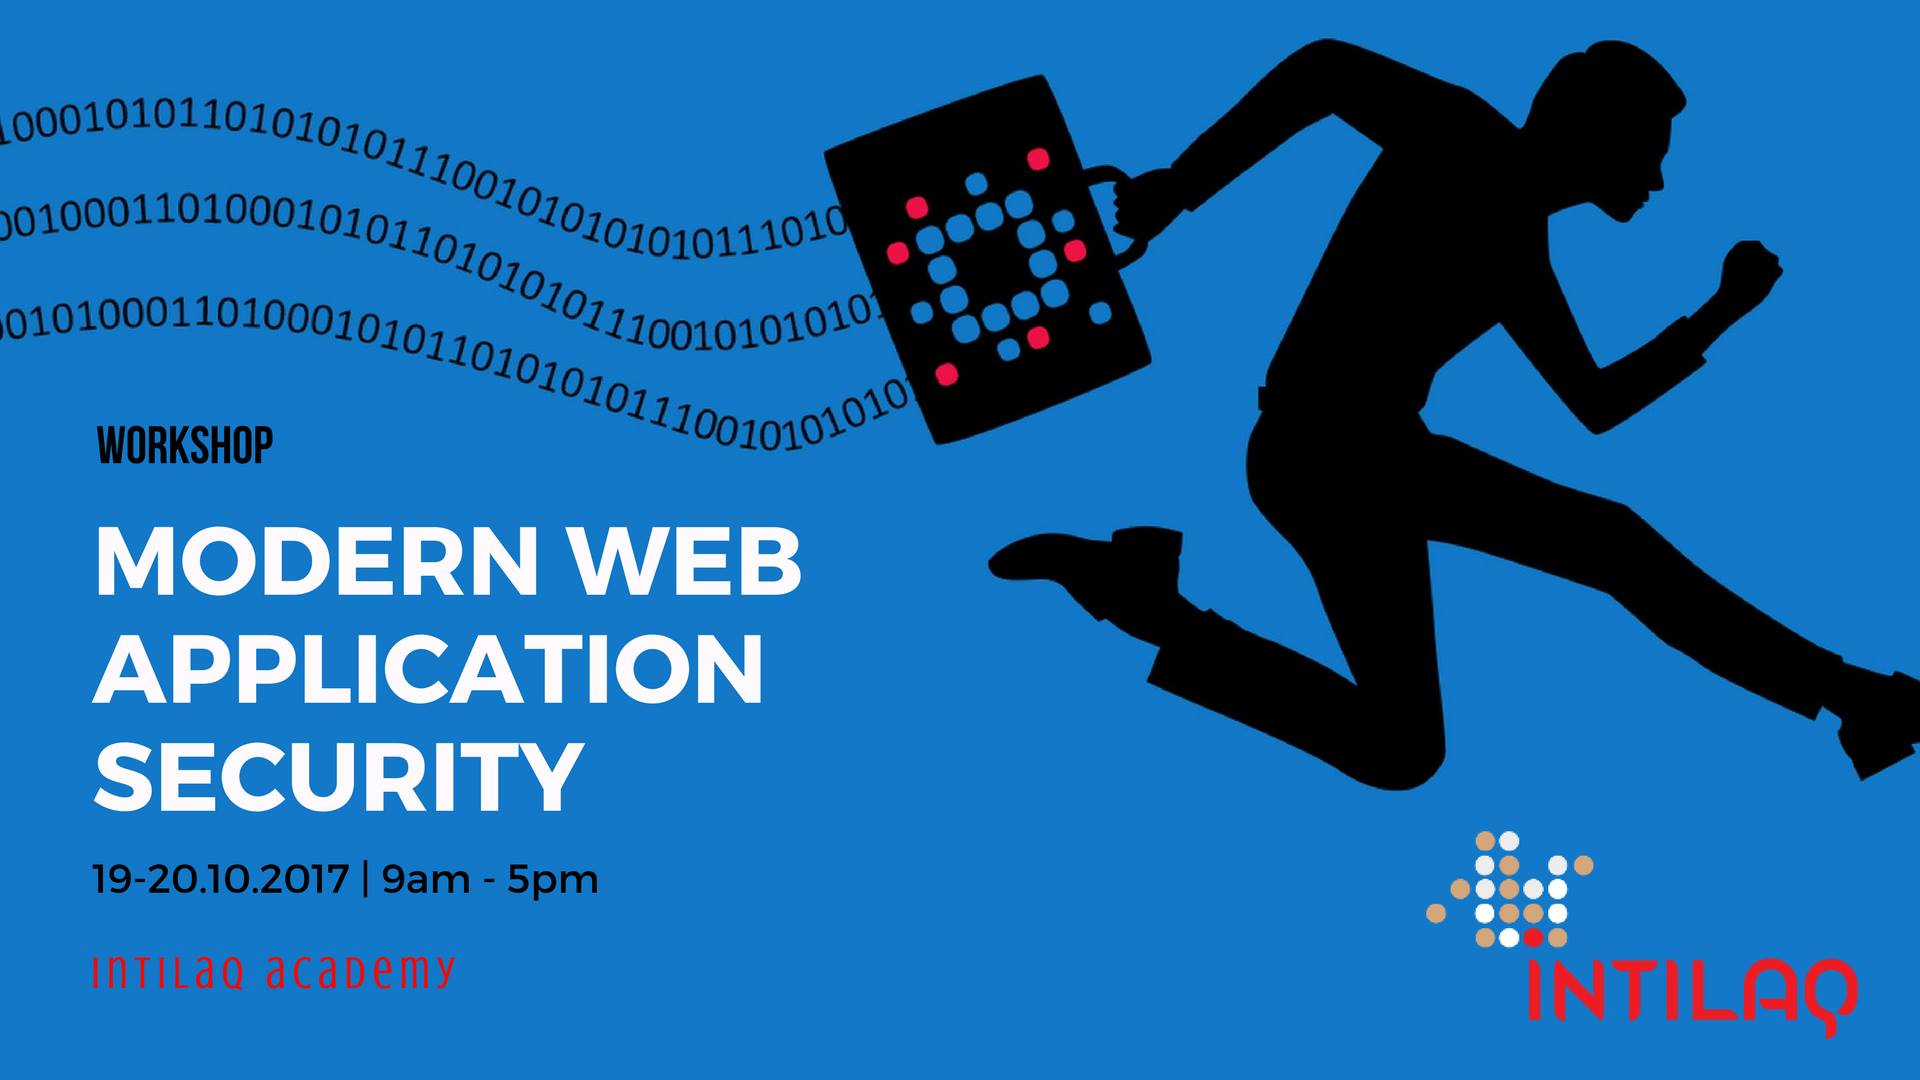 About Website Security